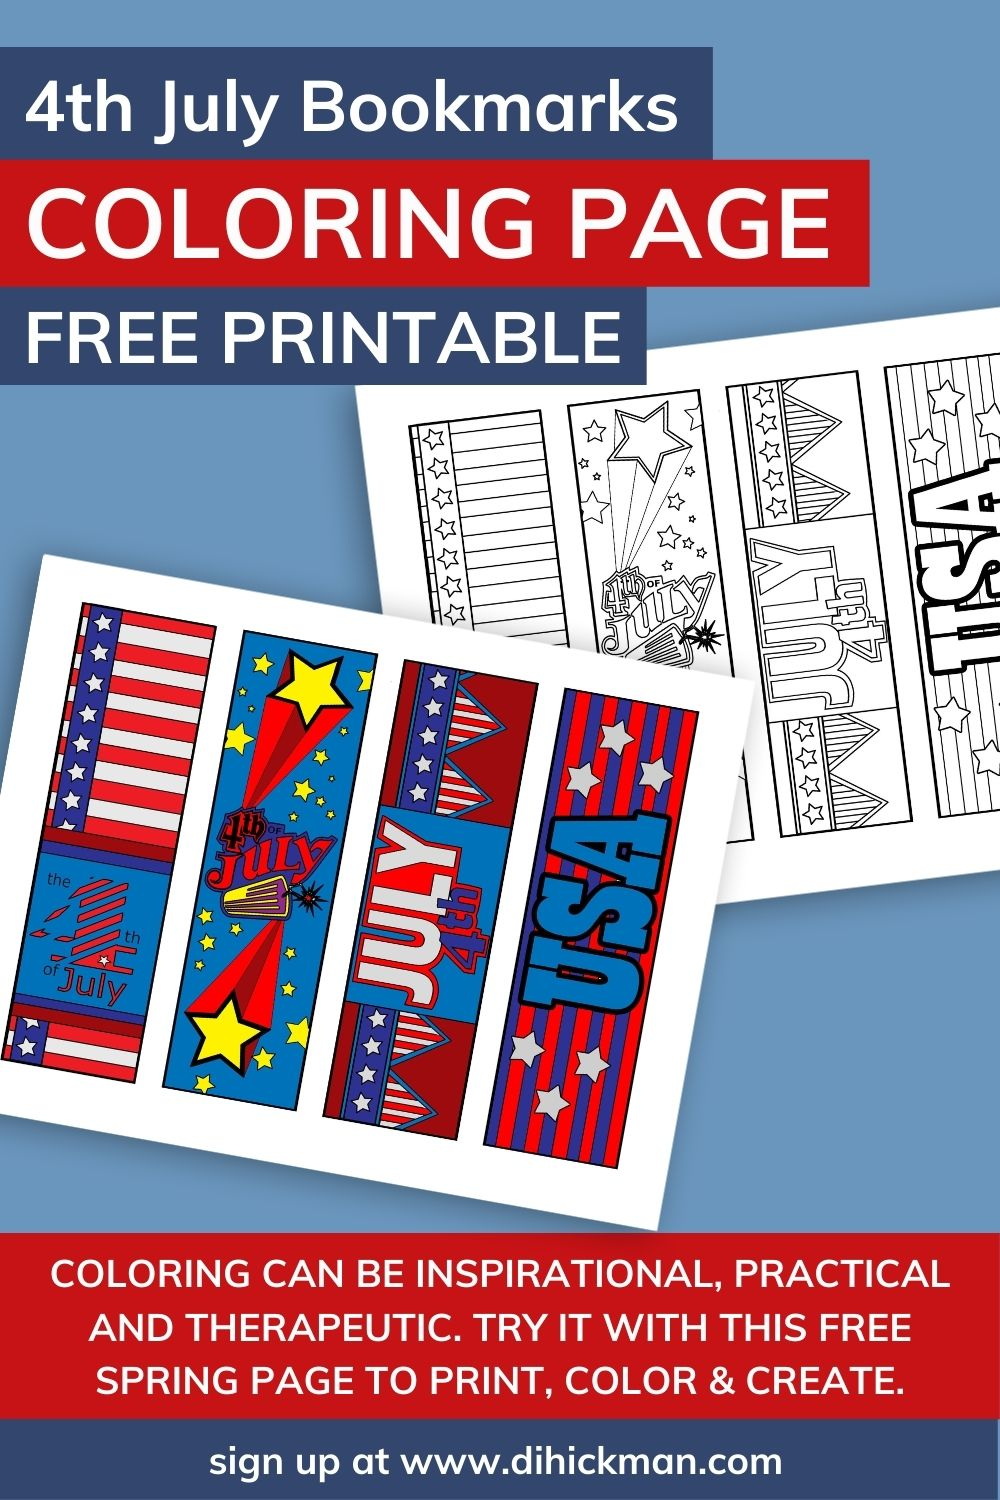 4th July Bookmarks Coloring Page free printable